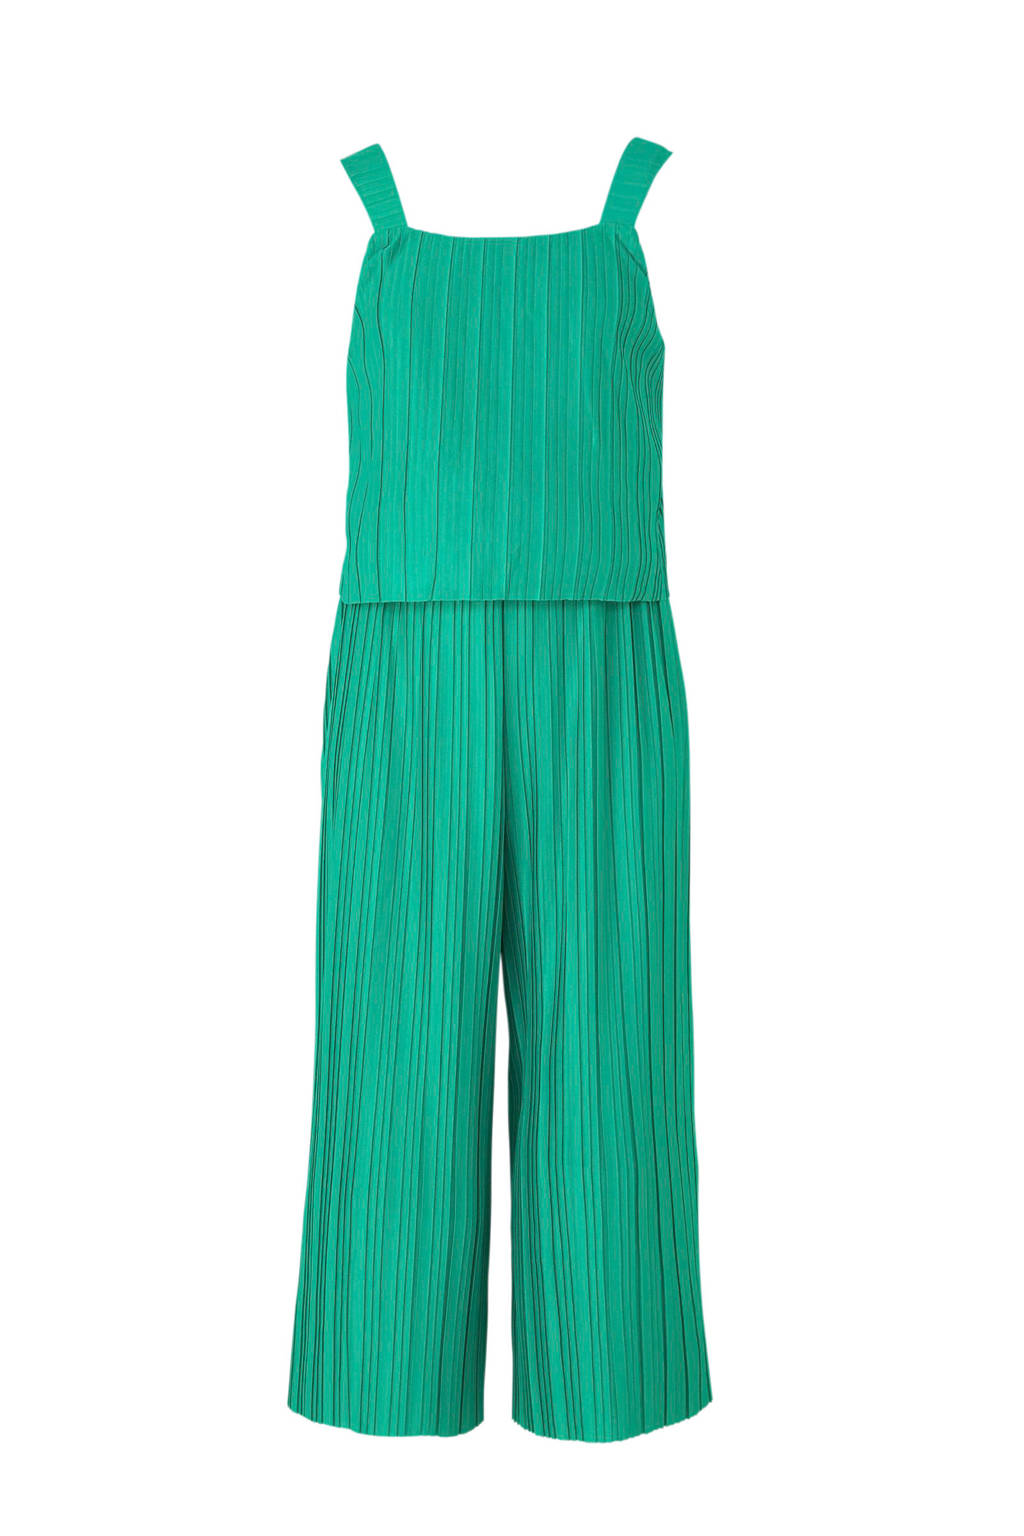 C&A Here & There jumpsuit groen, Groen